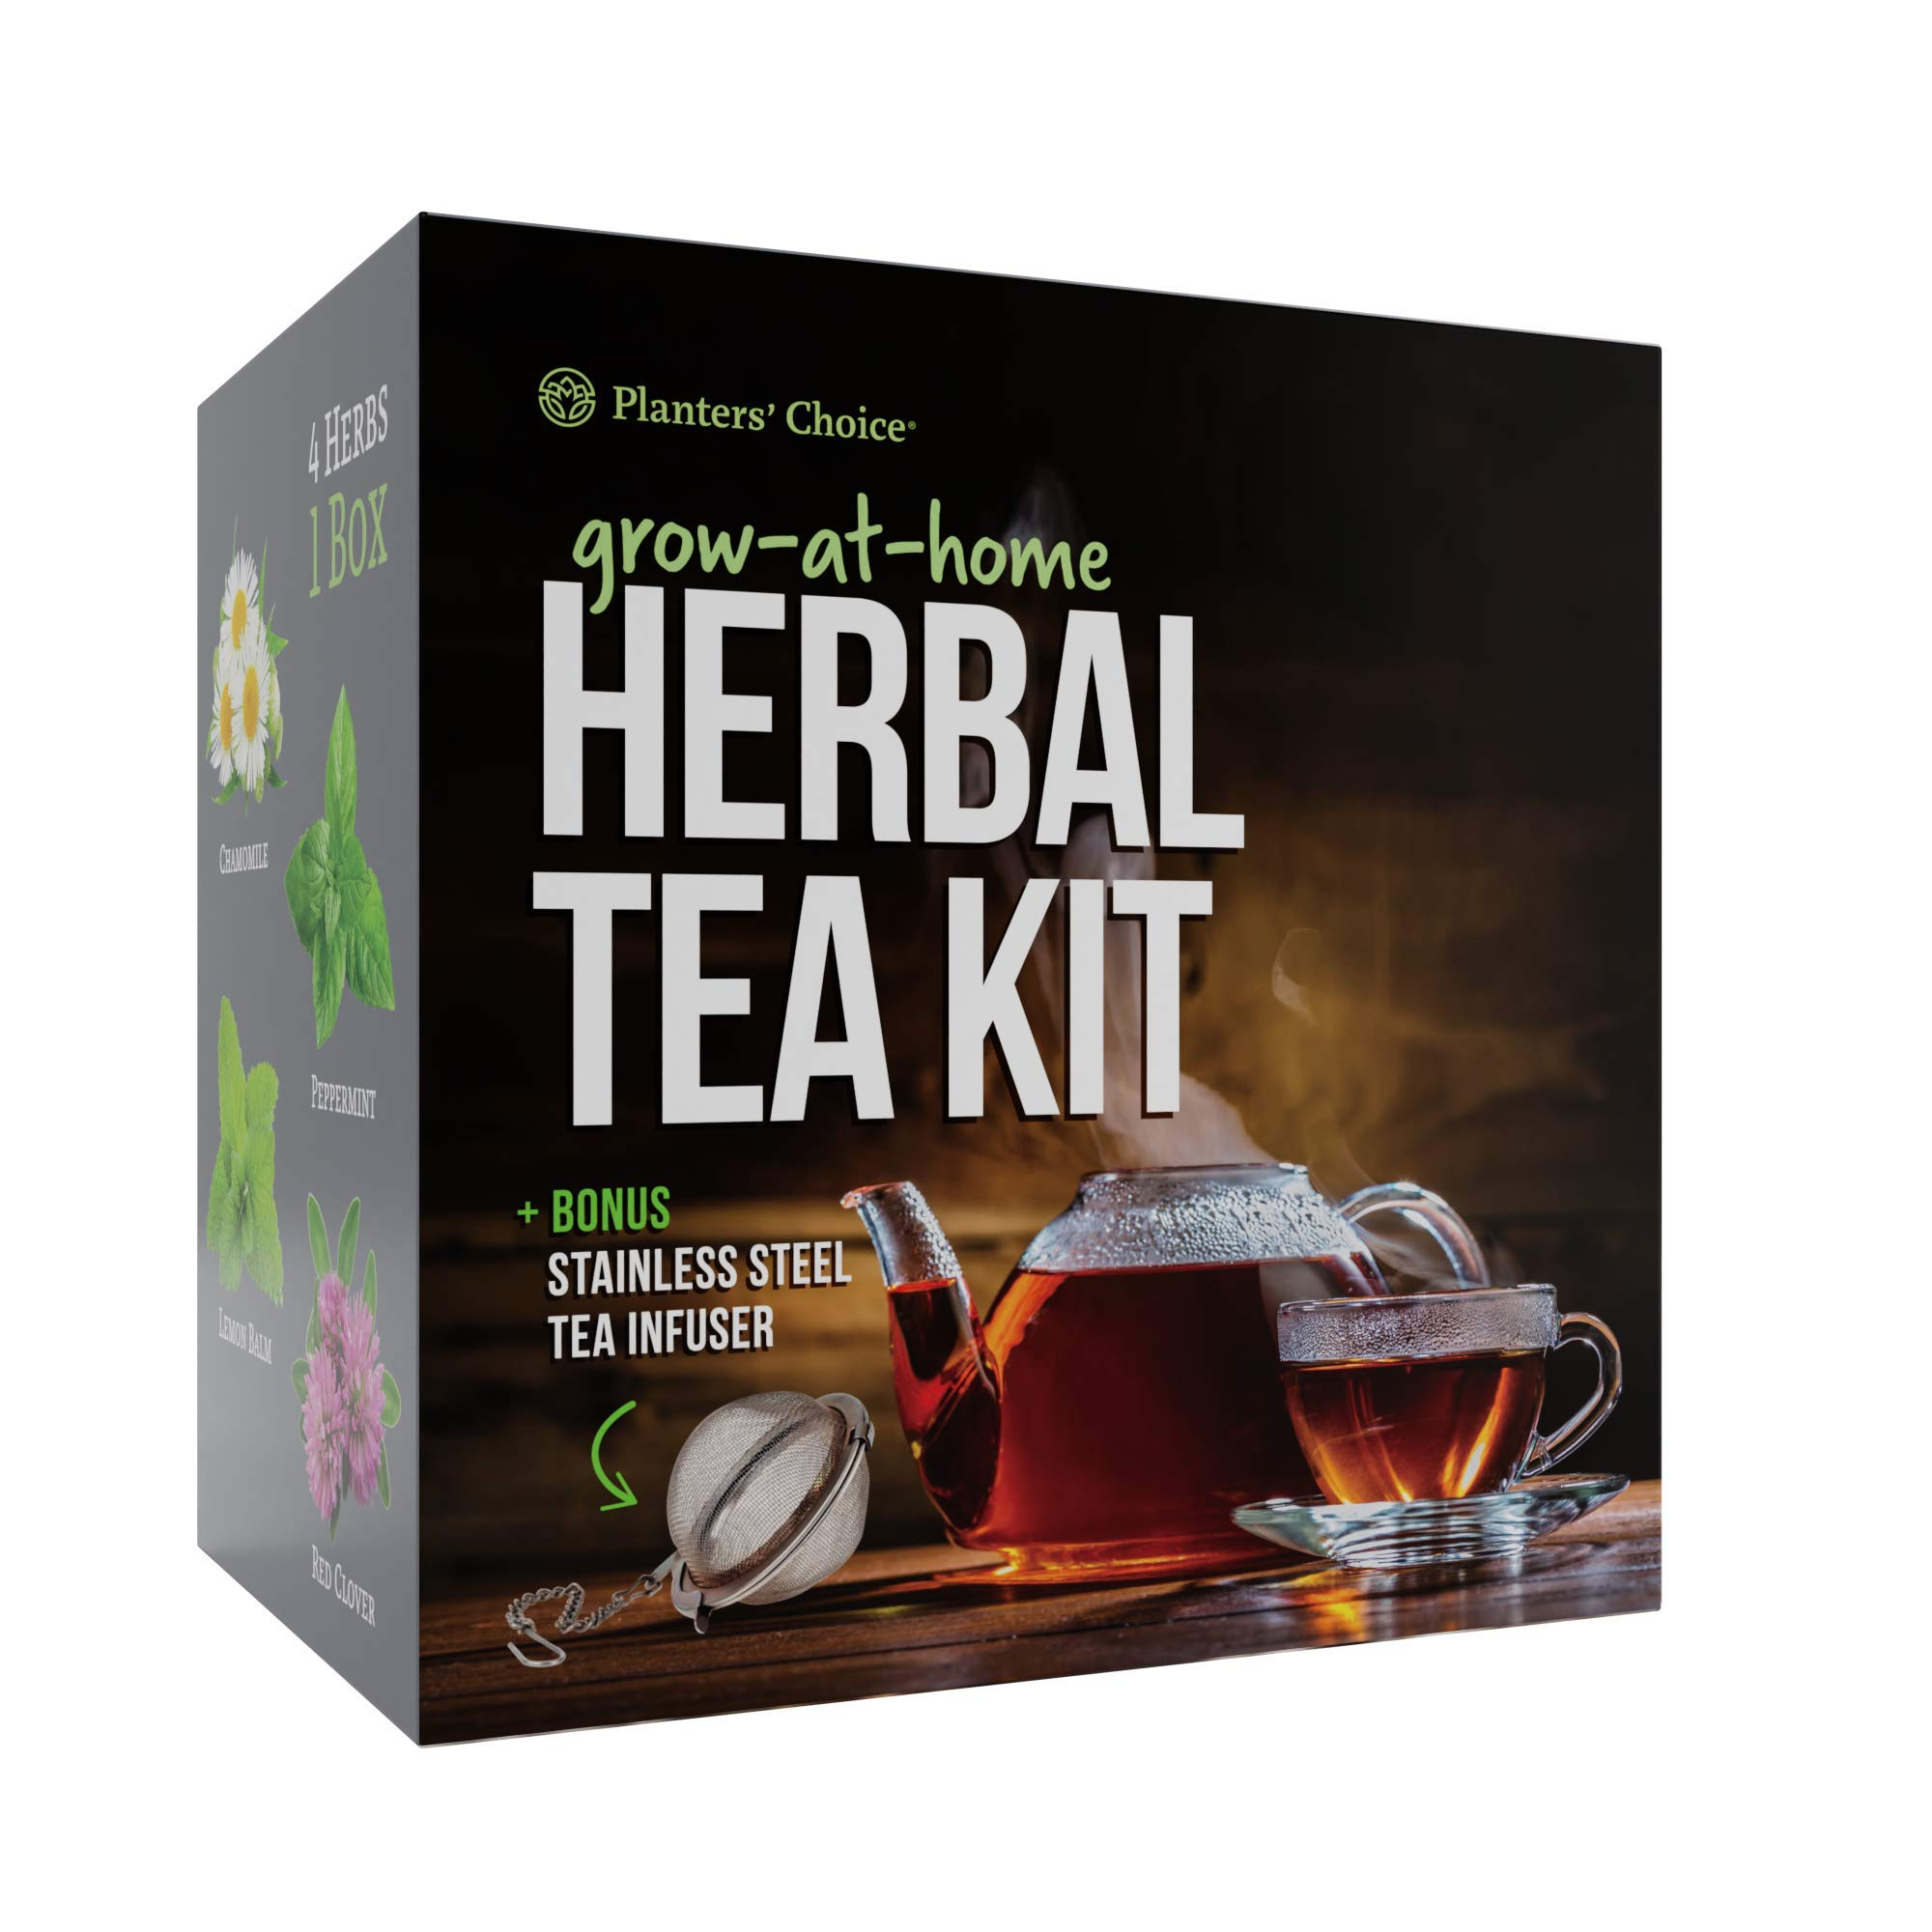 Grow 4 of Your Own Organic Herbal Tea Kit + Stainless Steel Tea Infuser | Chamomile, Peppermint, Lemon Balm, Red Clover | Everything Included: Pots, Soil, Seeds, Booklet, Bamboo Plant Labels by Planters' Choice (Image #1)